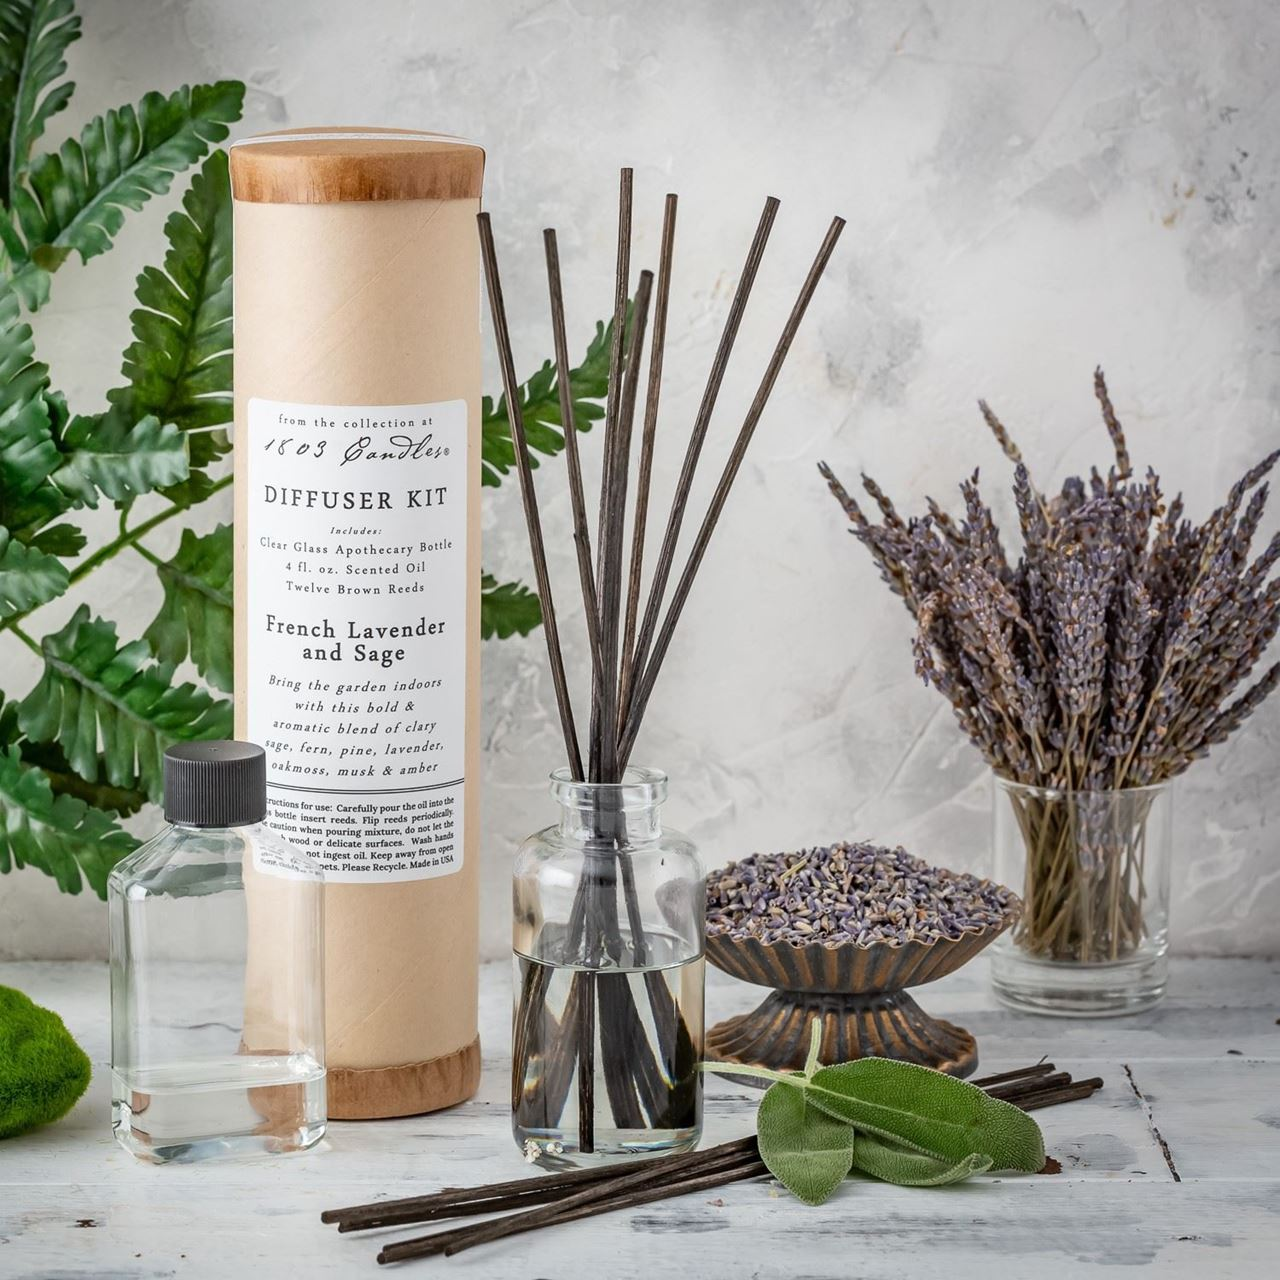 French Lavender & Sage Diffuser Kit  by 1803 Candles